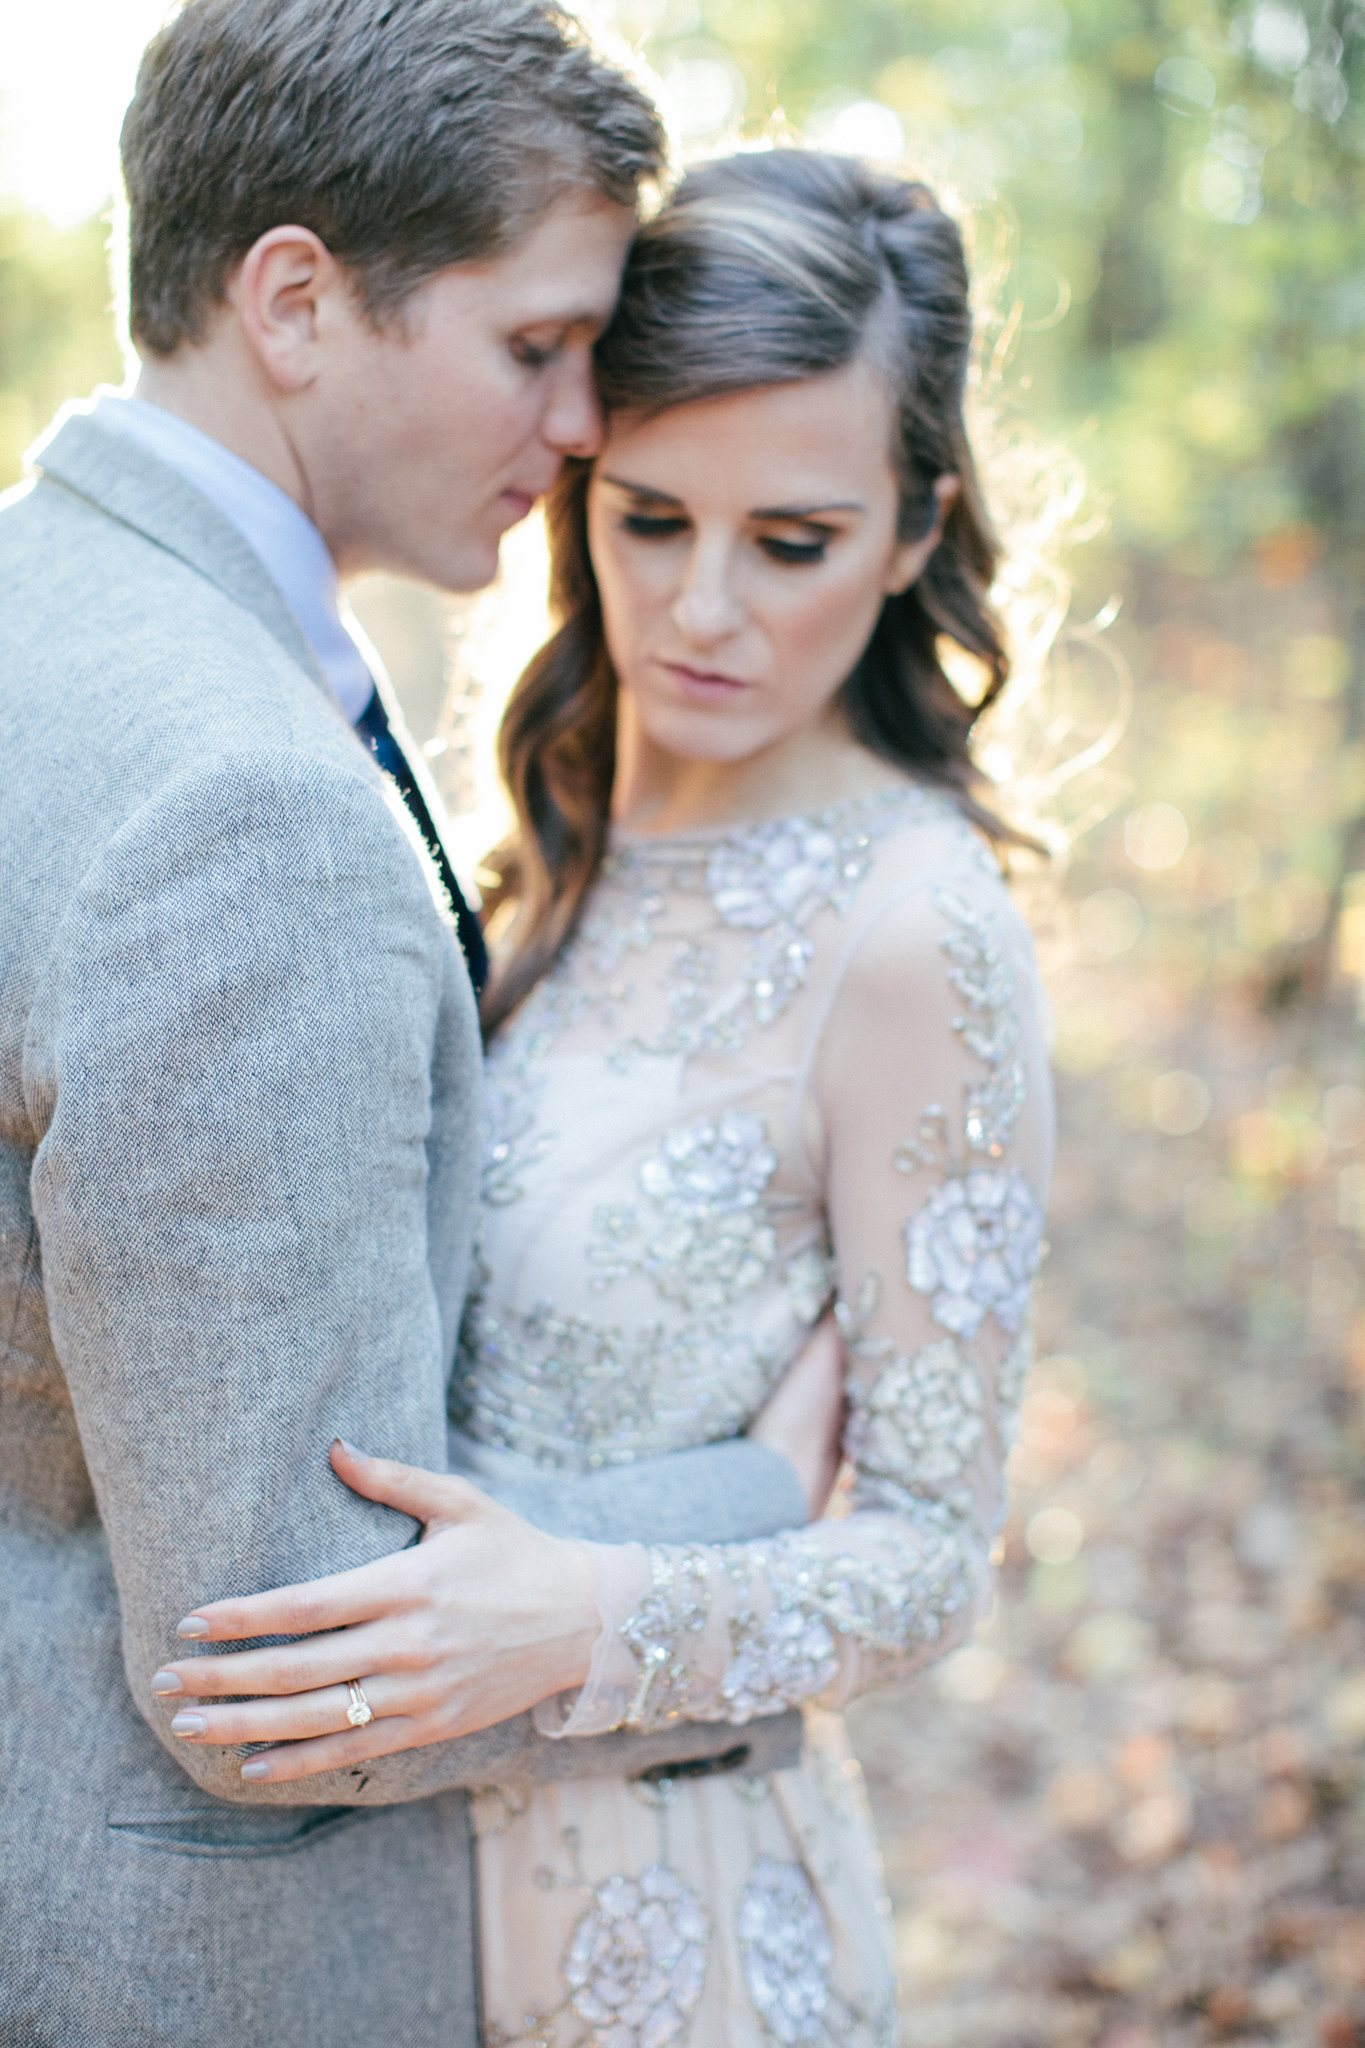 Brittany Kahlstorf & Joel Rogers-1